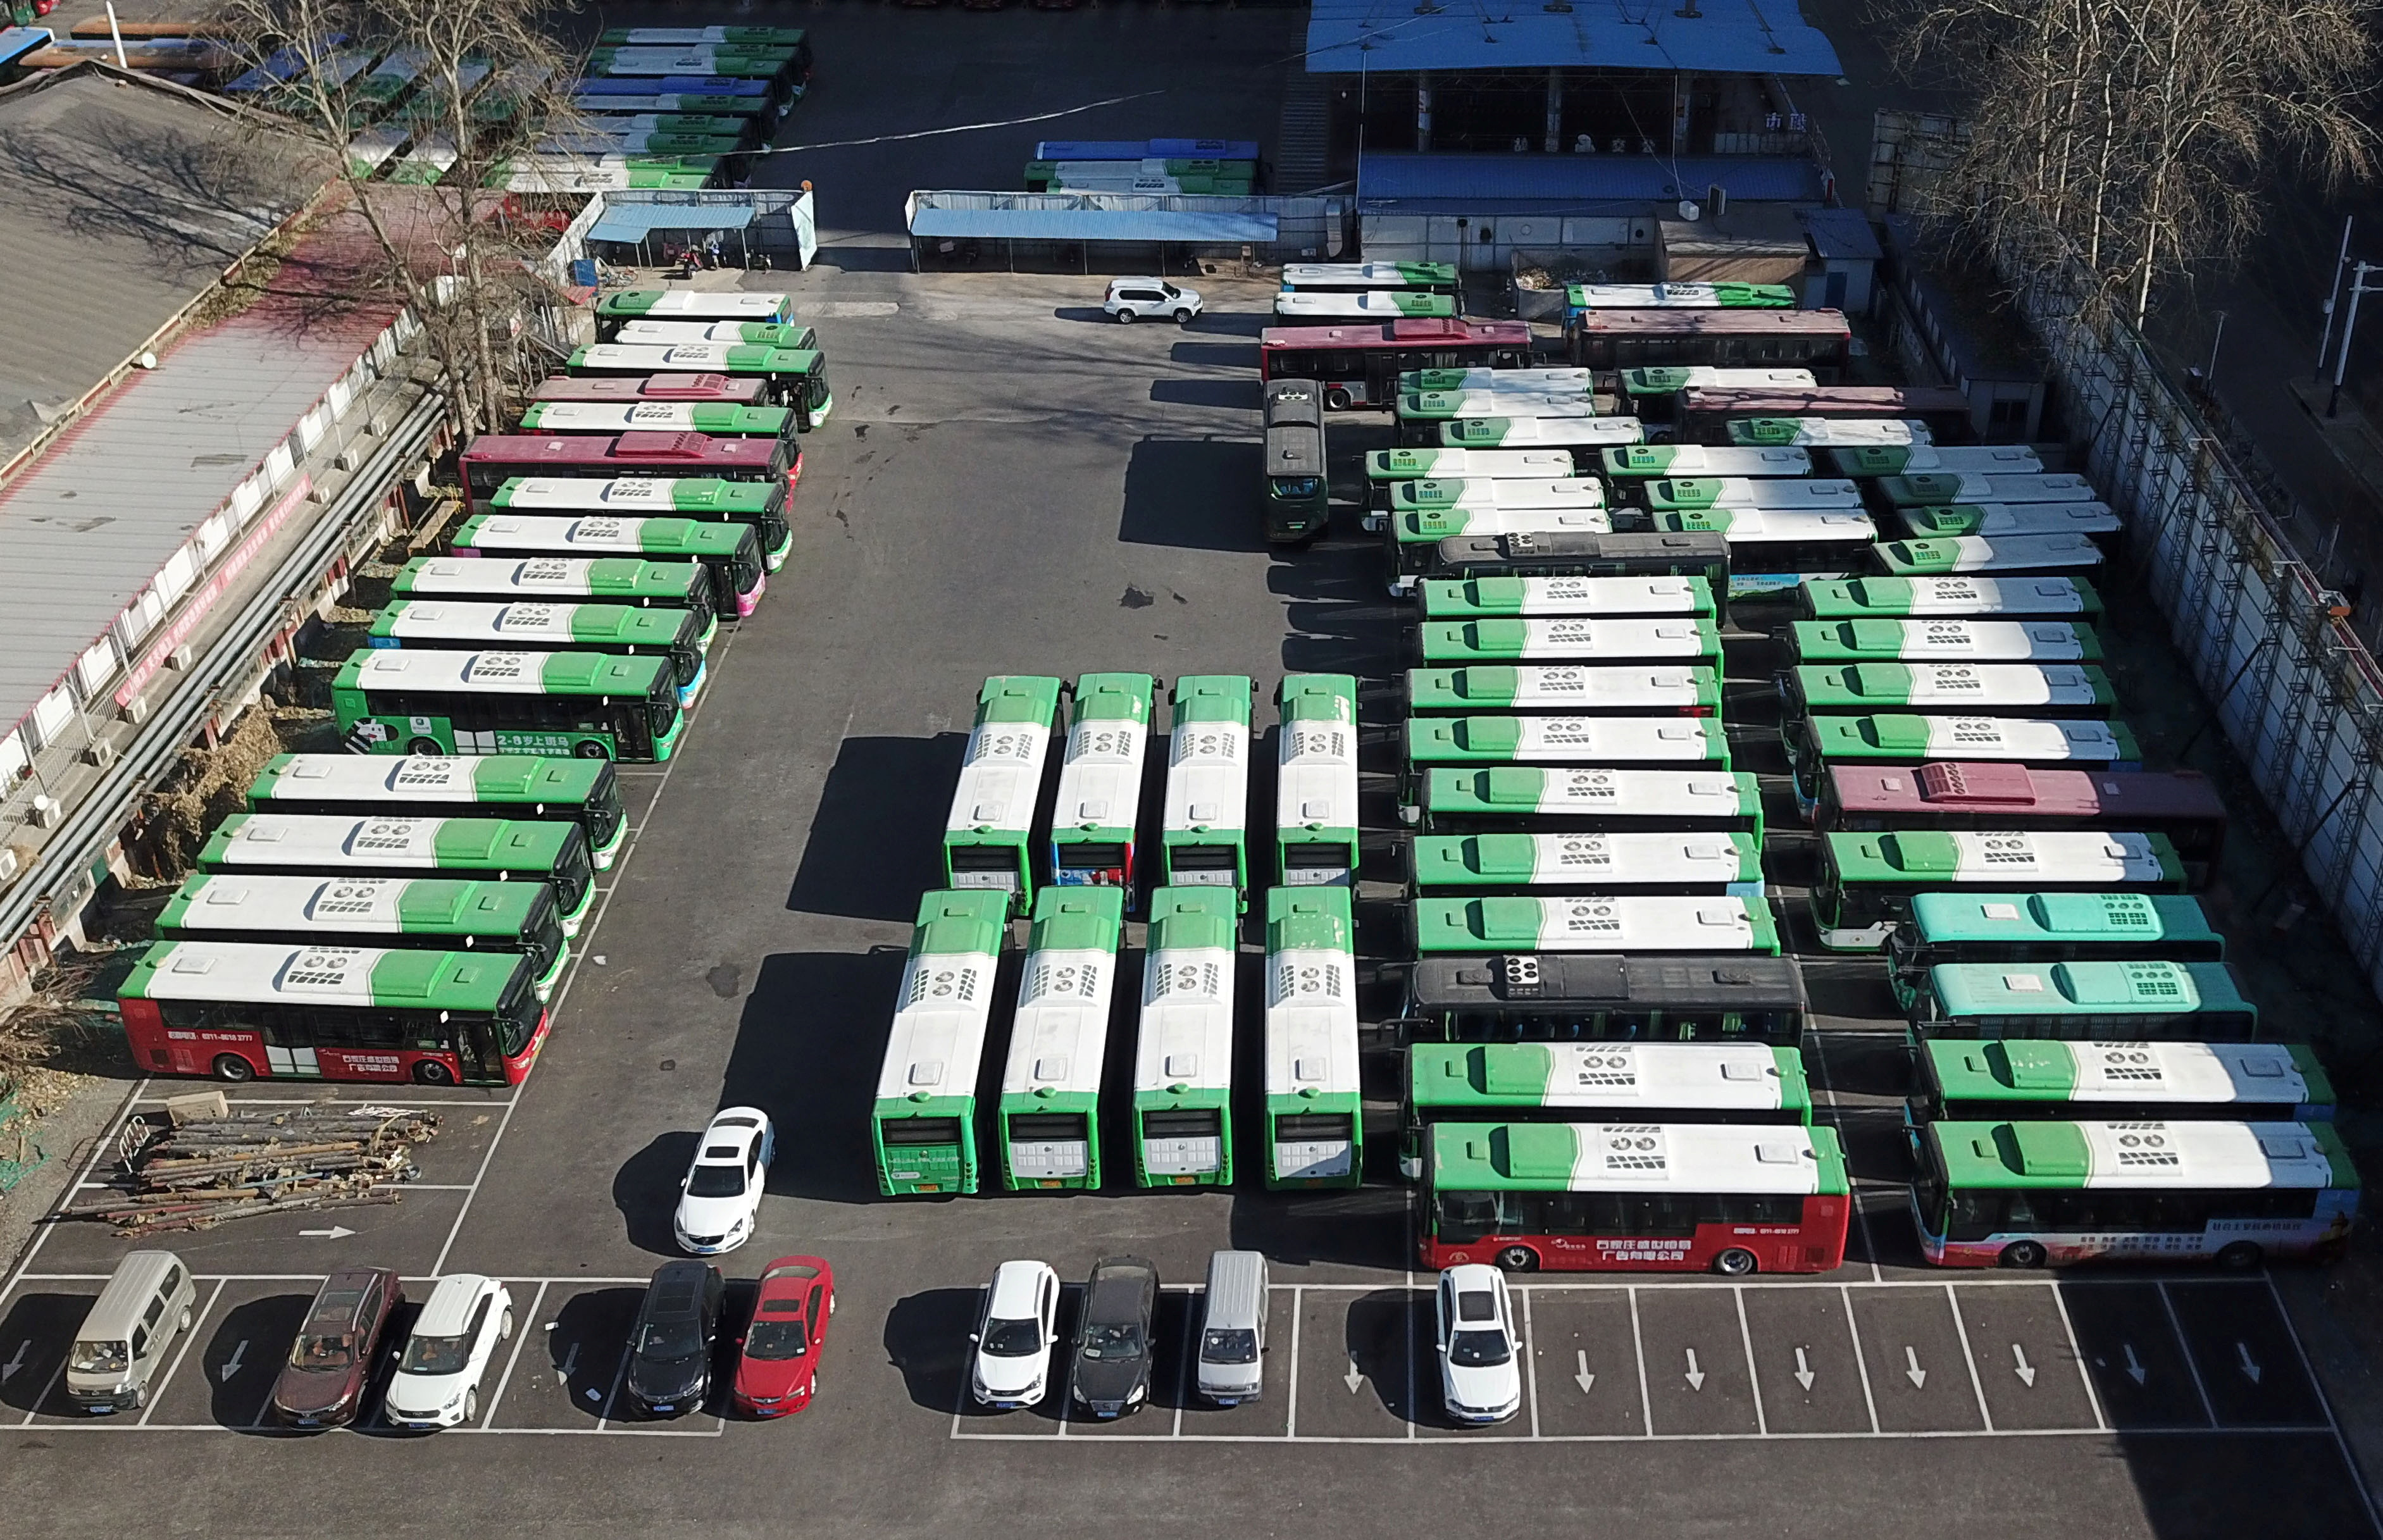 Buses are seen parked at a bus terminal in Shijiazhuang, after public transport in the city was halted following a recent outbreak of coronavirus disease (COVID-19), in Hebei province, China January 9, 2021. Picture taken with a drone. cnsphoto via REUTERS   ATTENTION EDITORS - THIS IMAGE WAS PROVIDED BY A THIRD PARTY. CHINA OUT. - RC294L9EU2IJ